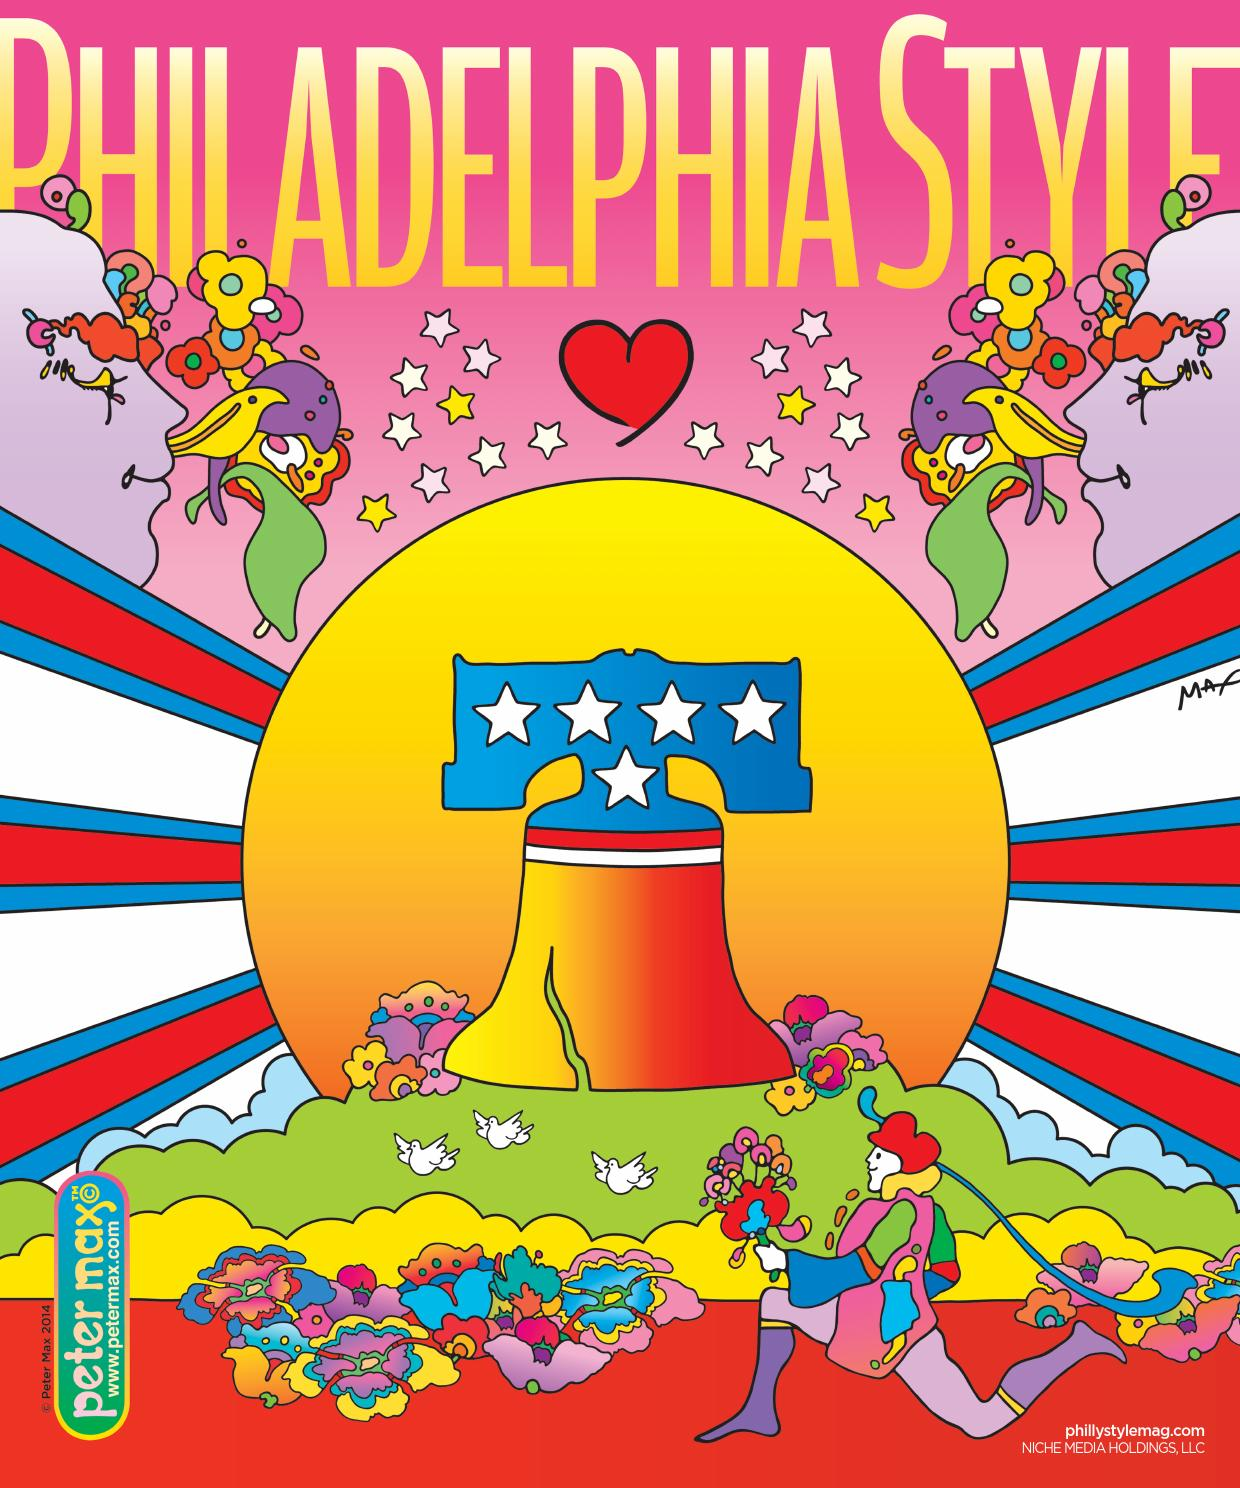 Philadelphia Style - 2014 - Issue 3 - Summer by Niche Media Holdings, LLC -  issuu